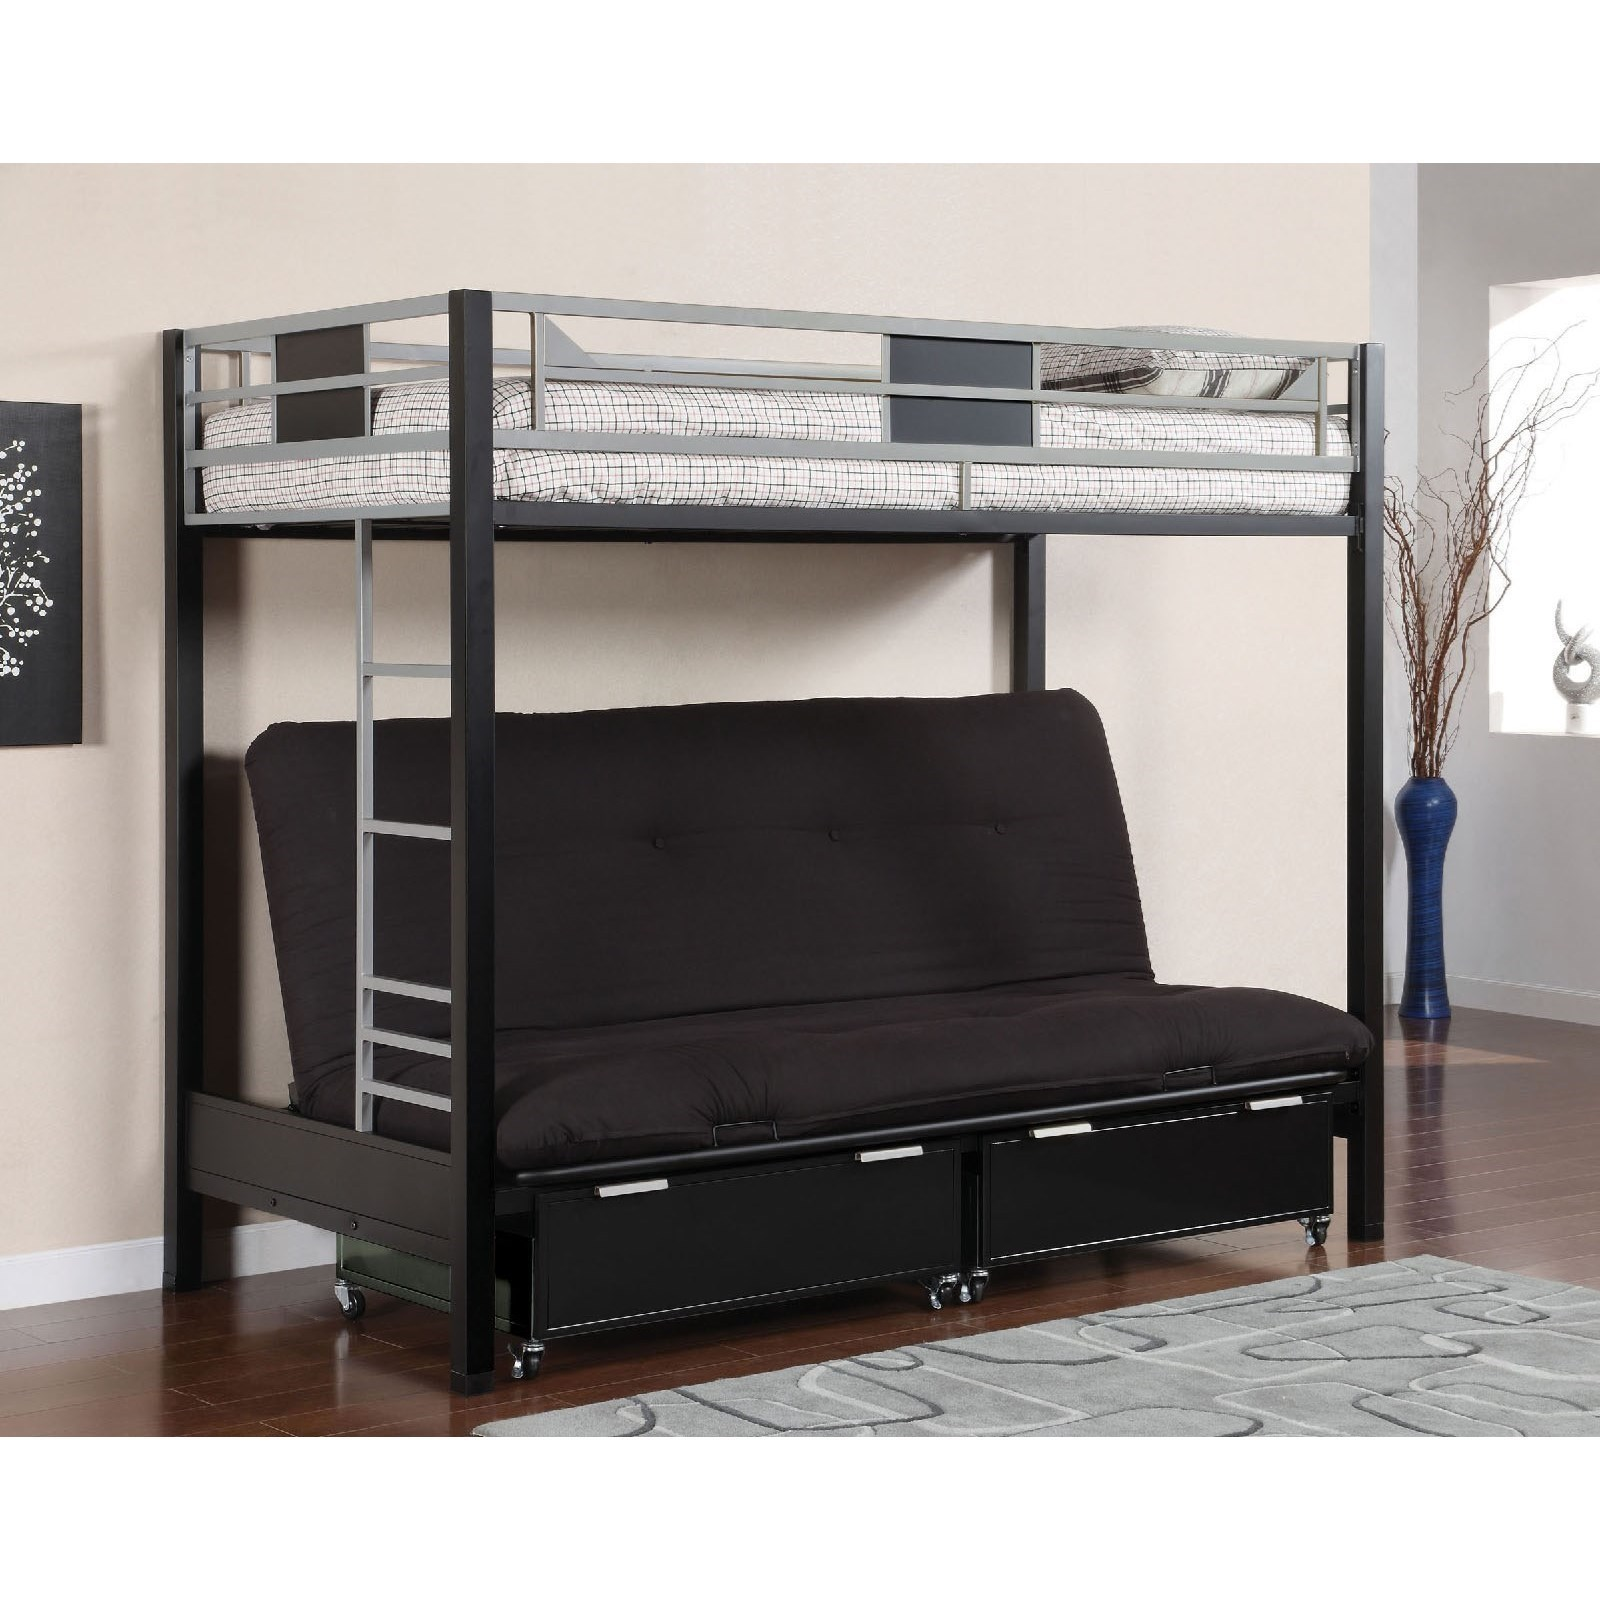 ... Furniture Of America CliftonTwin Loft Bed With Futon Base ...